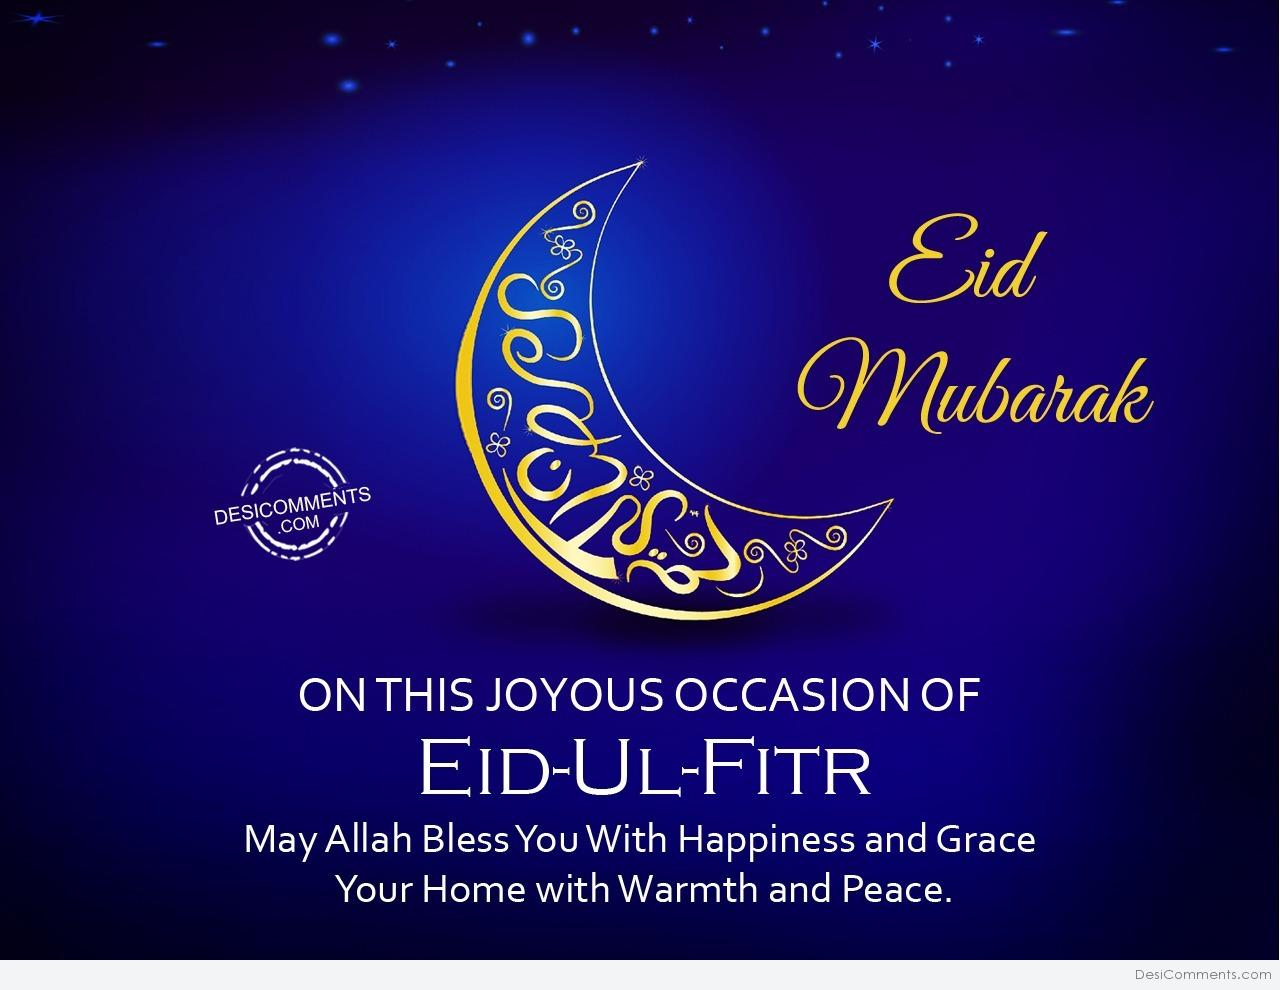 eid ul fitr pictures images graphics